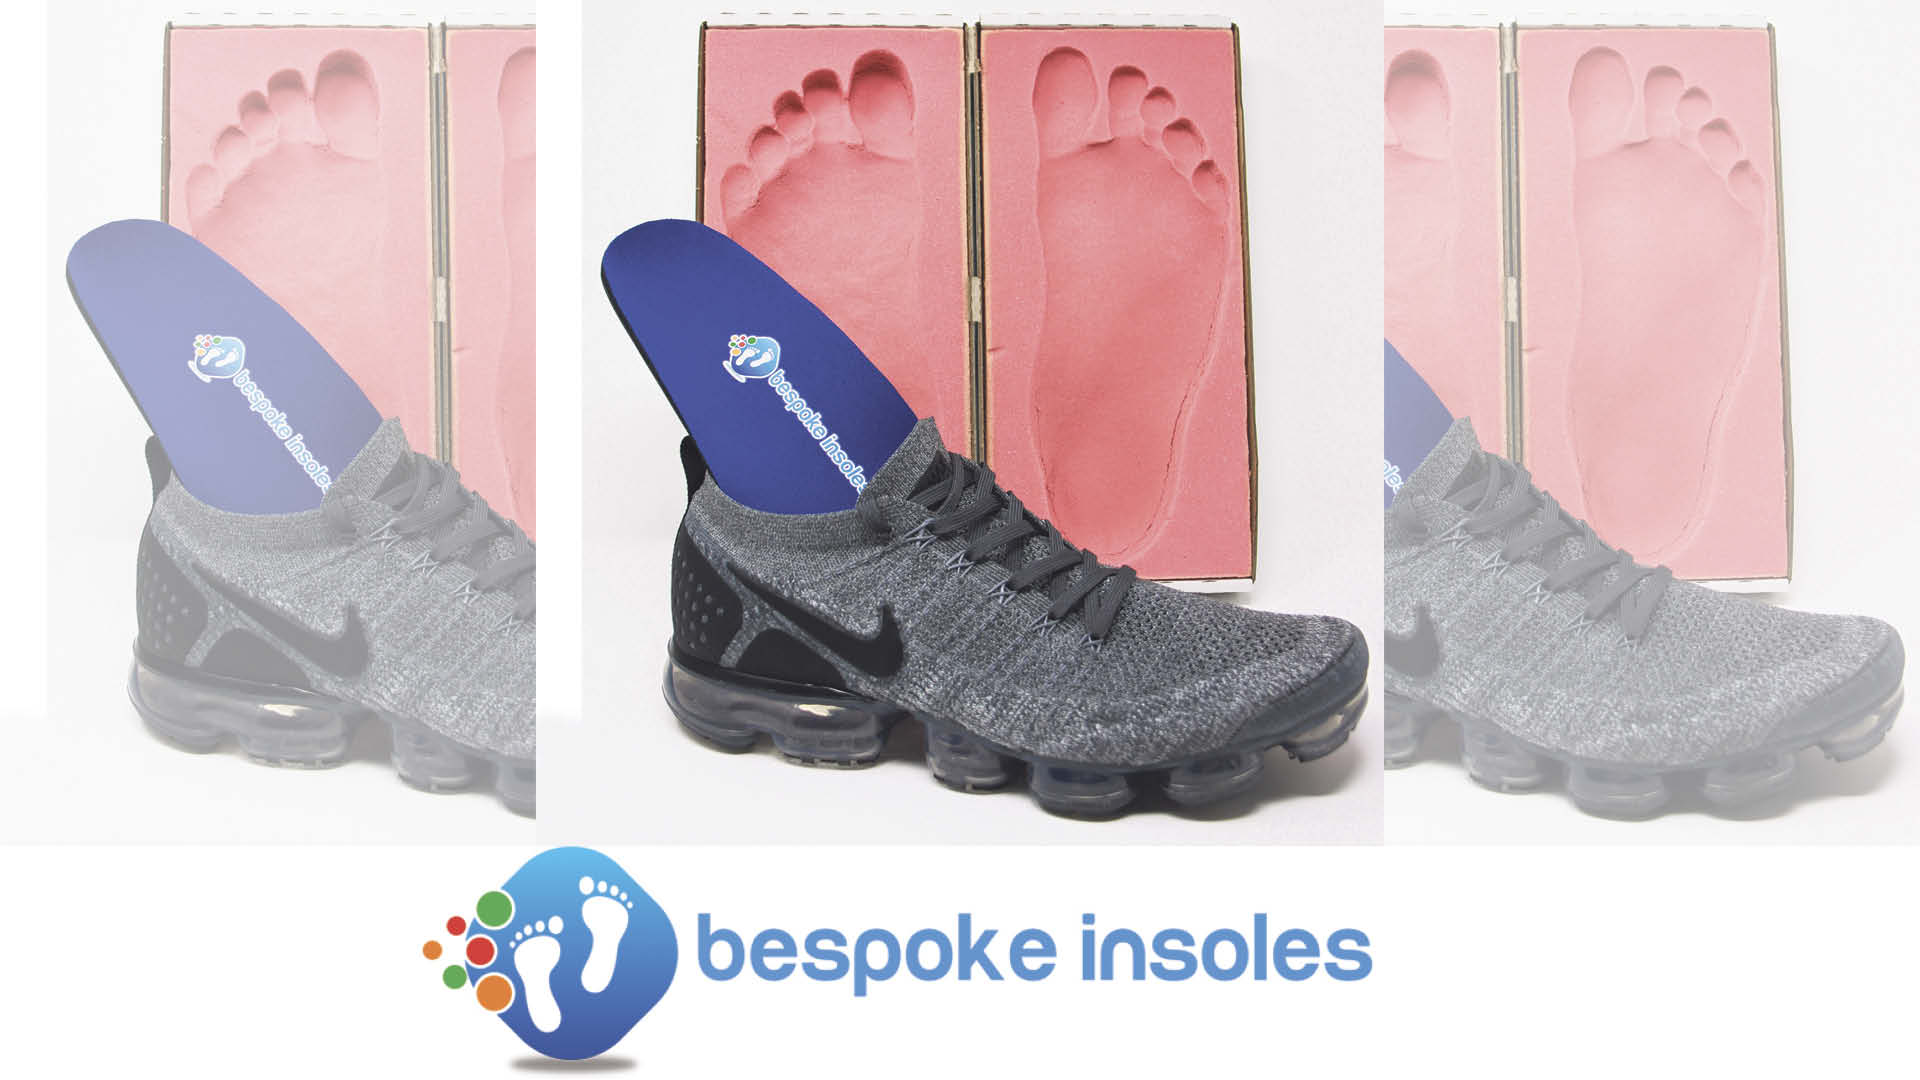 custom made insoles to support your feet